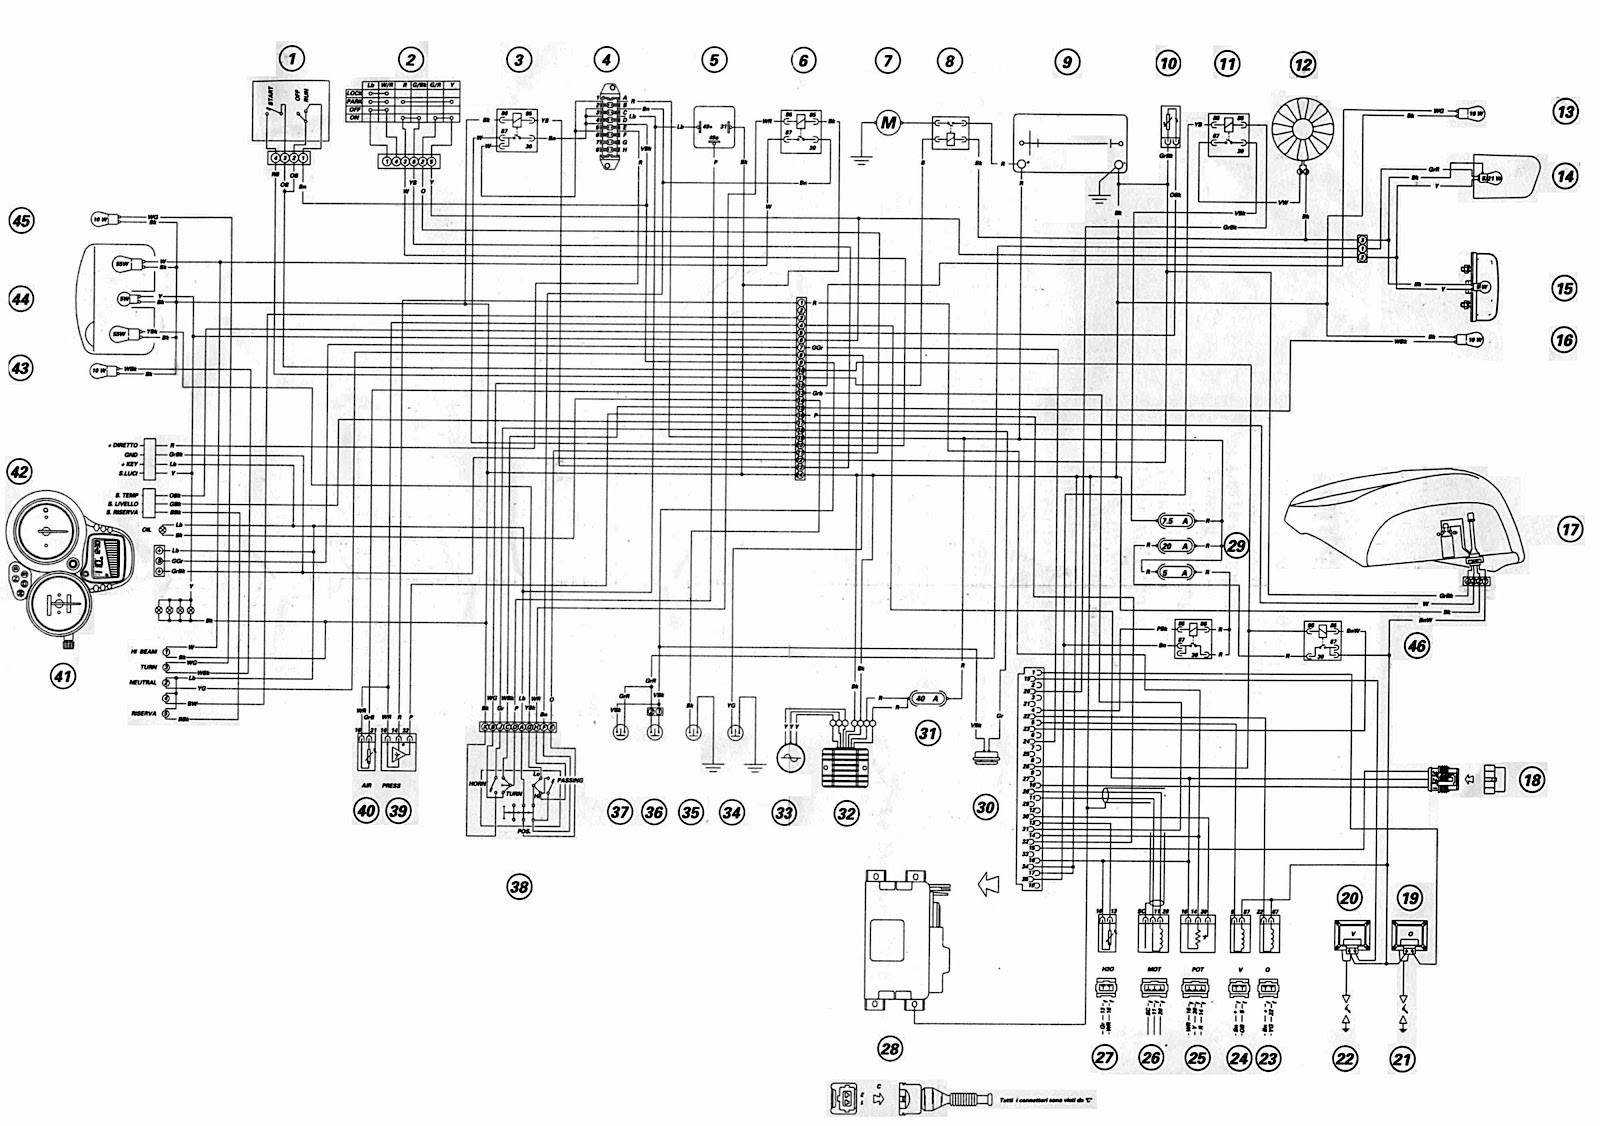 Ducati 999 Wiring Diagram Schematic Pin 2001 Monster 900 On Pinterest 999s Enthusiast Diagrams U2022 Rh Rasalibre Co 1994 Lt1 Harley Davidson Manual